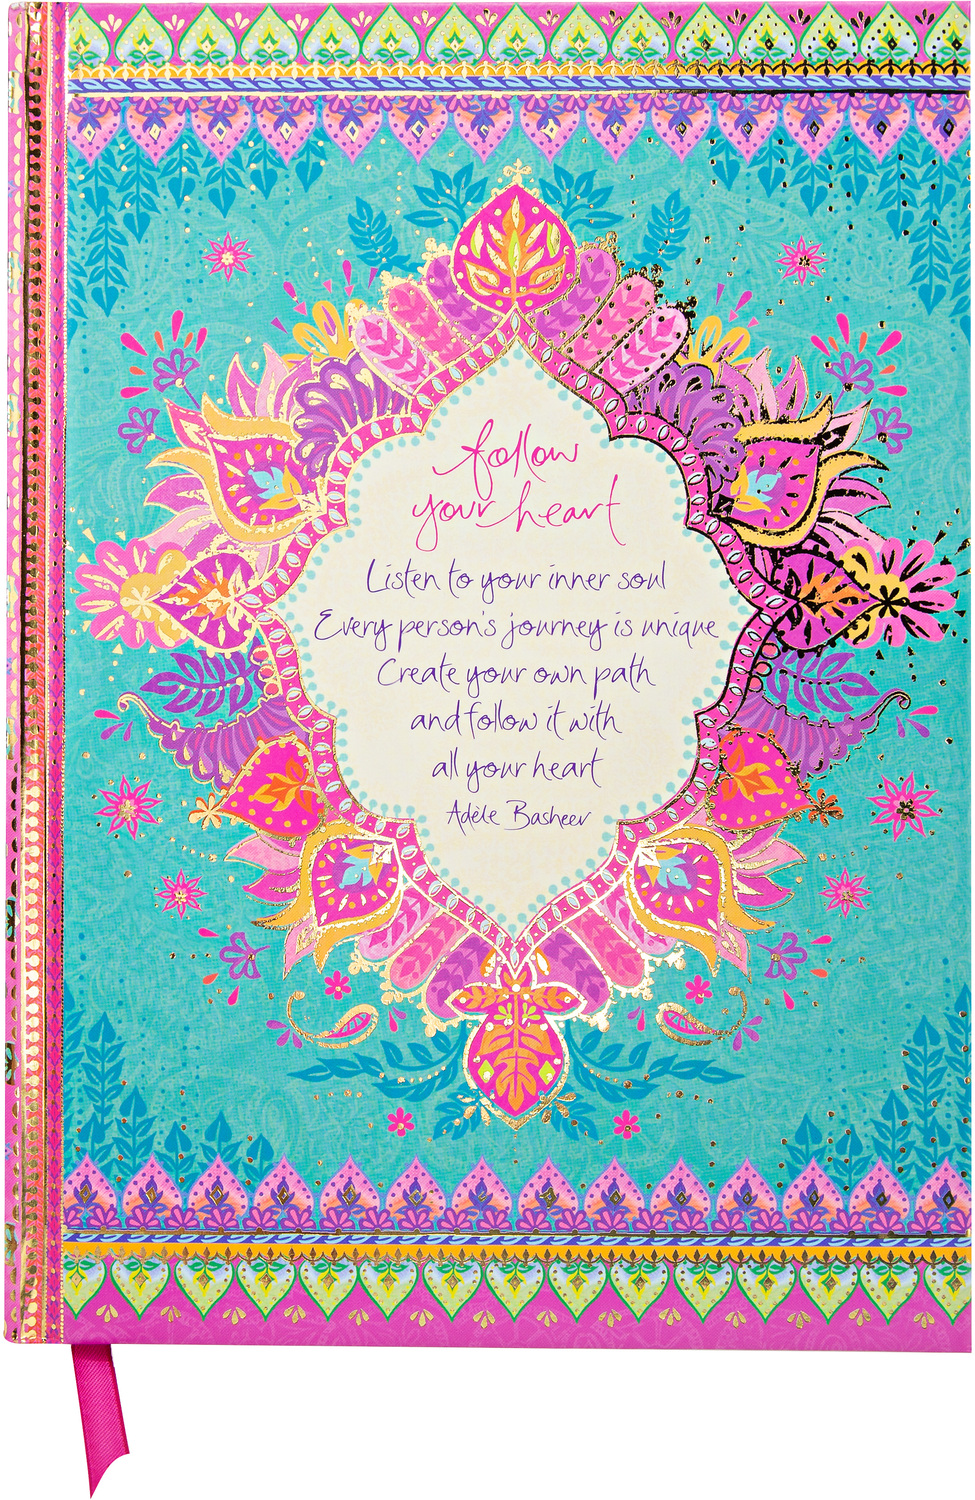 "Follow Your Heart by Intrinsic - Follow Your Heart - 8.5"" x 6.25"" Journal"